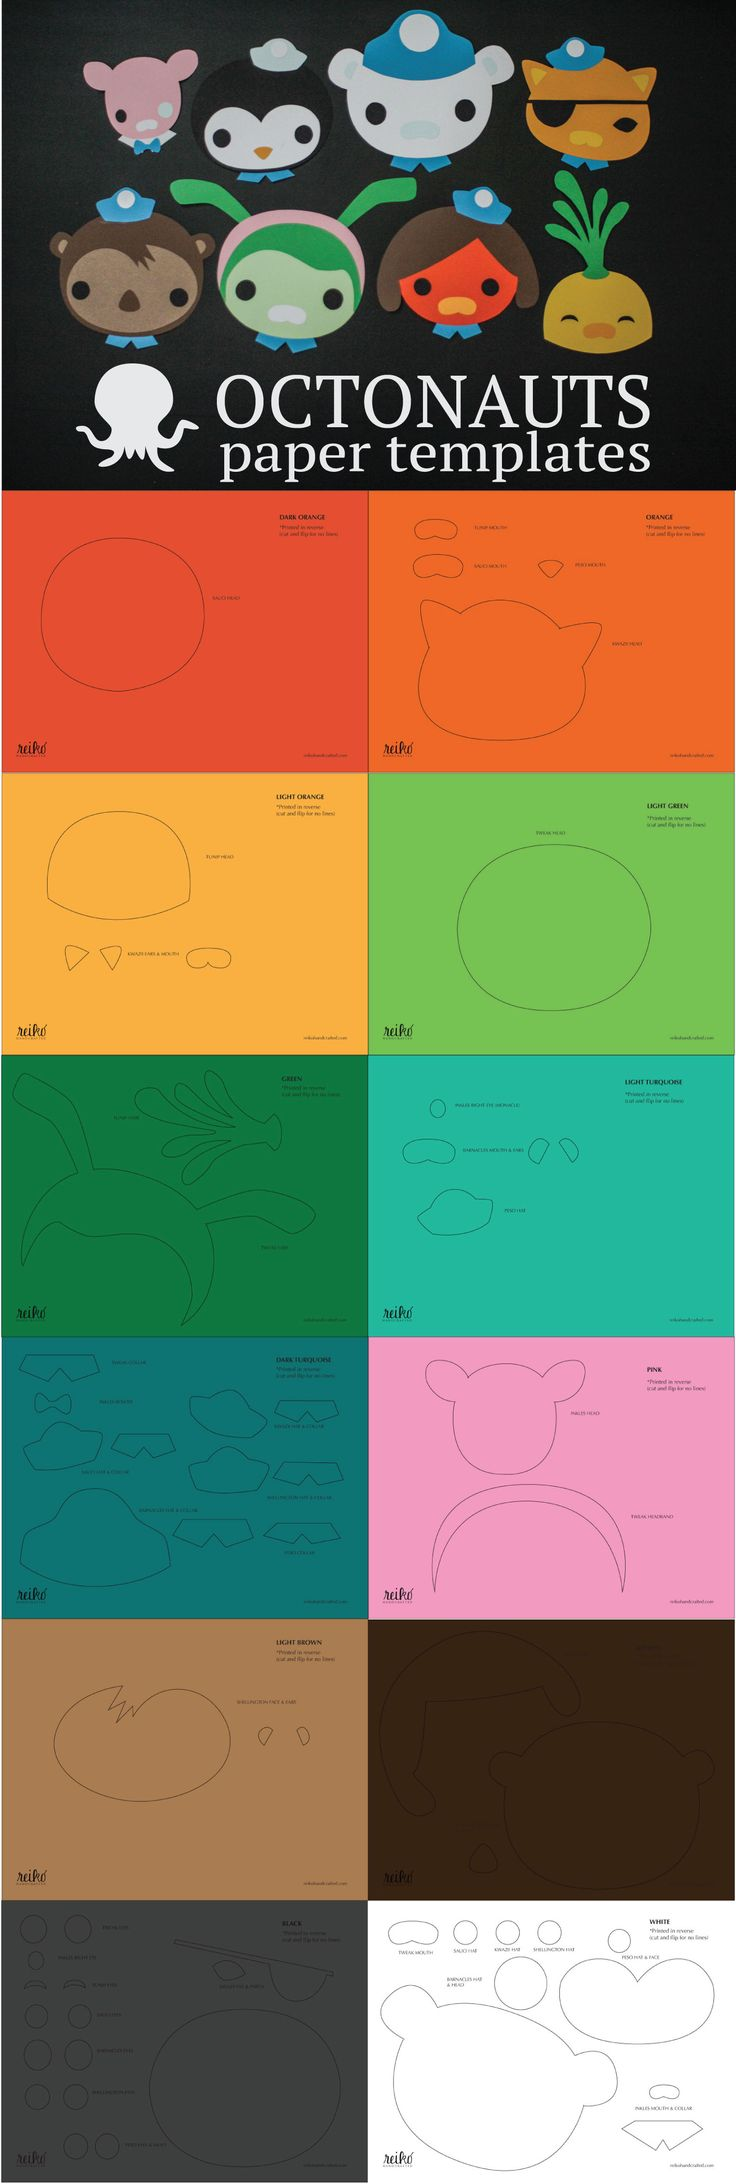 12 Free Printable Templates to create 8 Octonauts characters - Peso, Captain Barnacles, Kwazii and the whole gang. Each PDF is in black and white designed to print on colored card stock with individual pieces labeled (Kwazii's eyes, Peso's hat, etc). Use them as fun decor for an Octonauts themed birthday party!